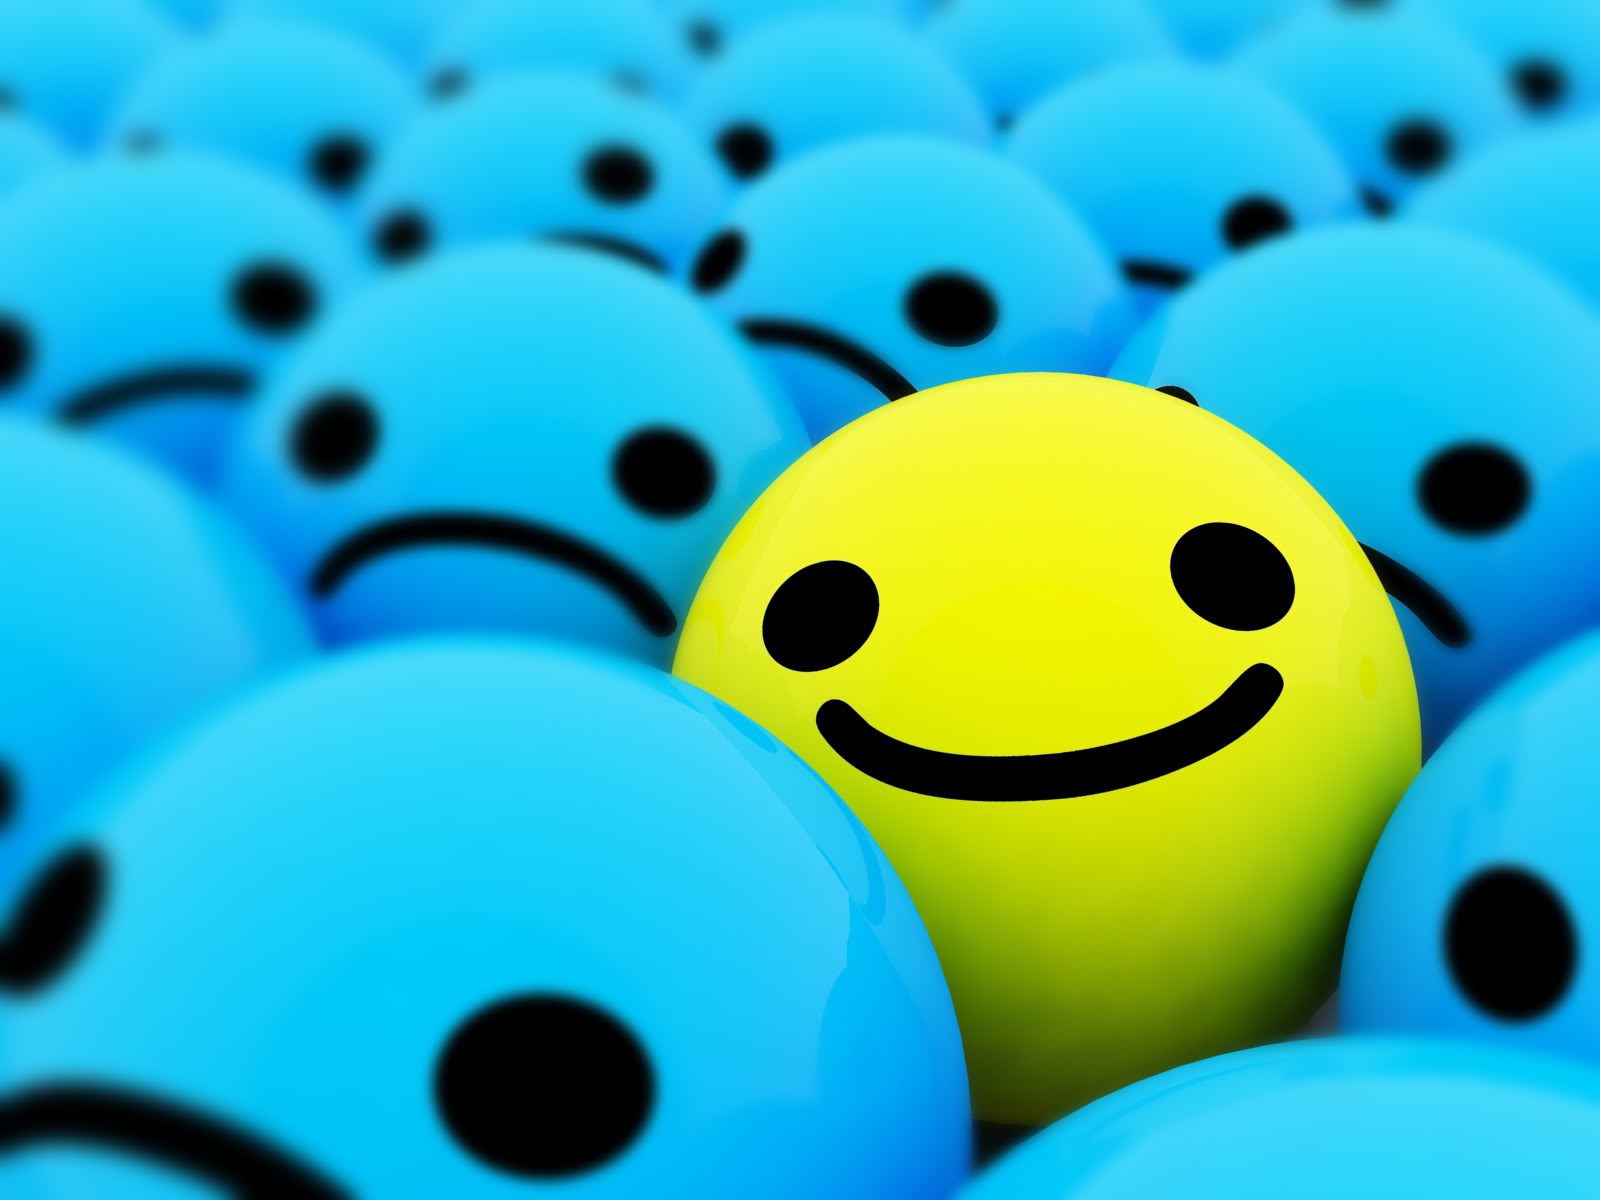 Awesome Smiley Background 2886 Hd Wallpapers in Others   Imagescicom 1600x1200